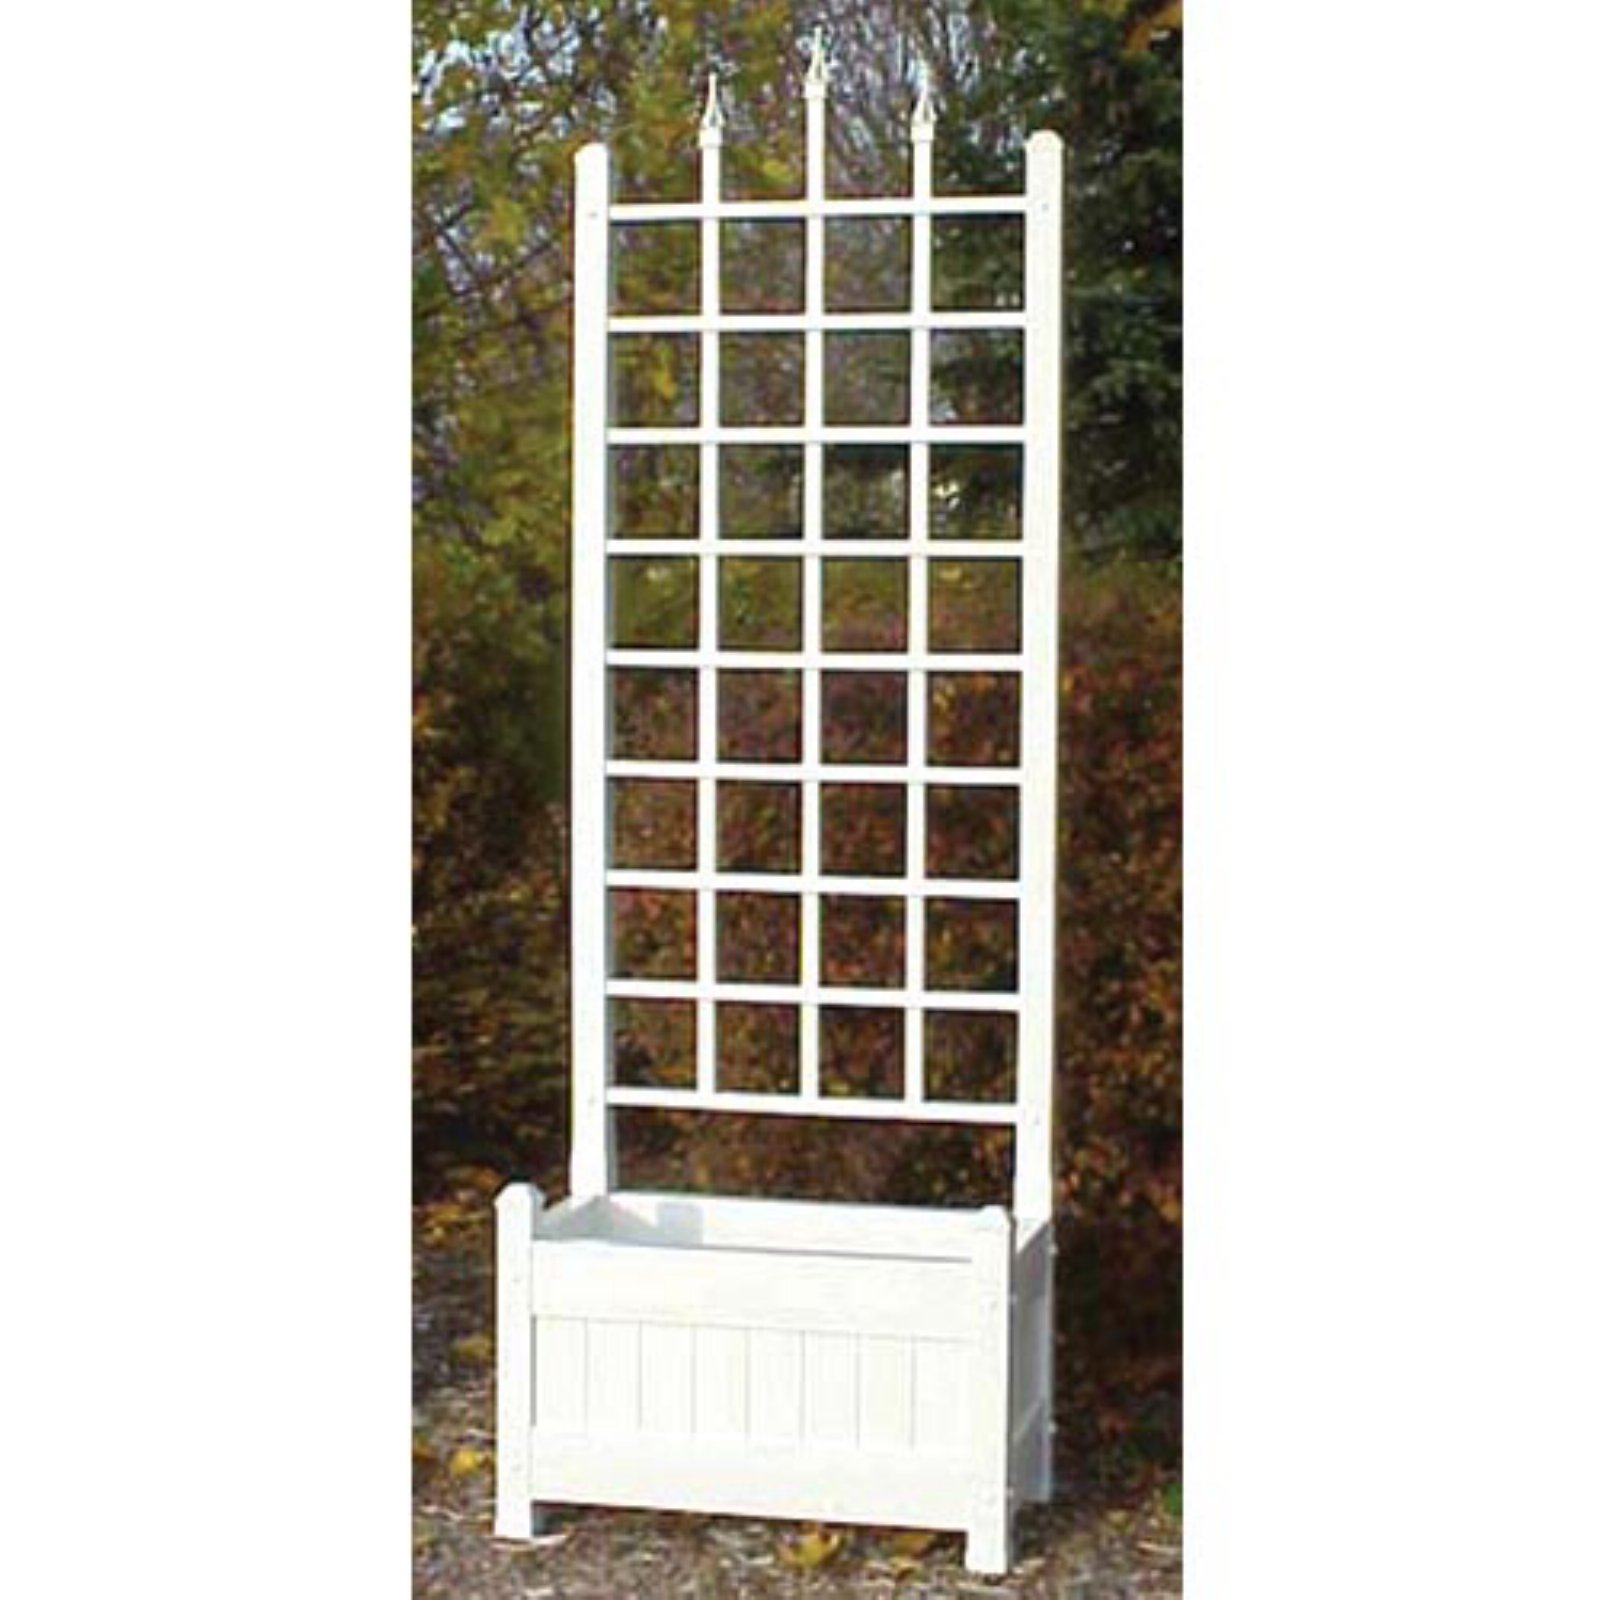 Dura-Trel 5-Foot White Rectangle Vinyl Camelot Planter Box with Trellis by Dura-Trel